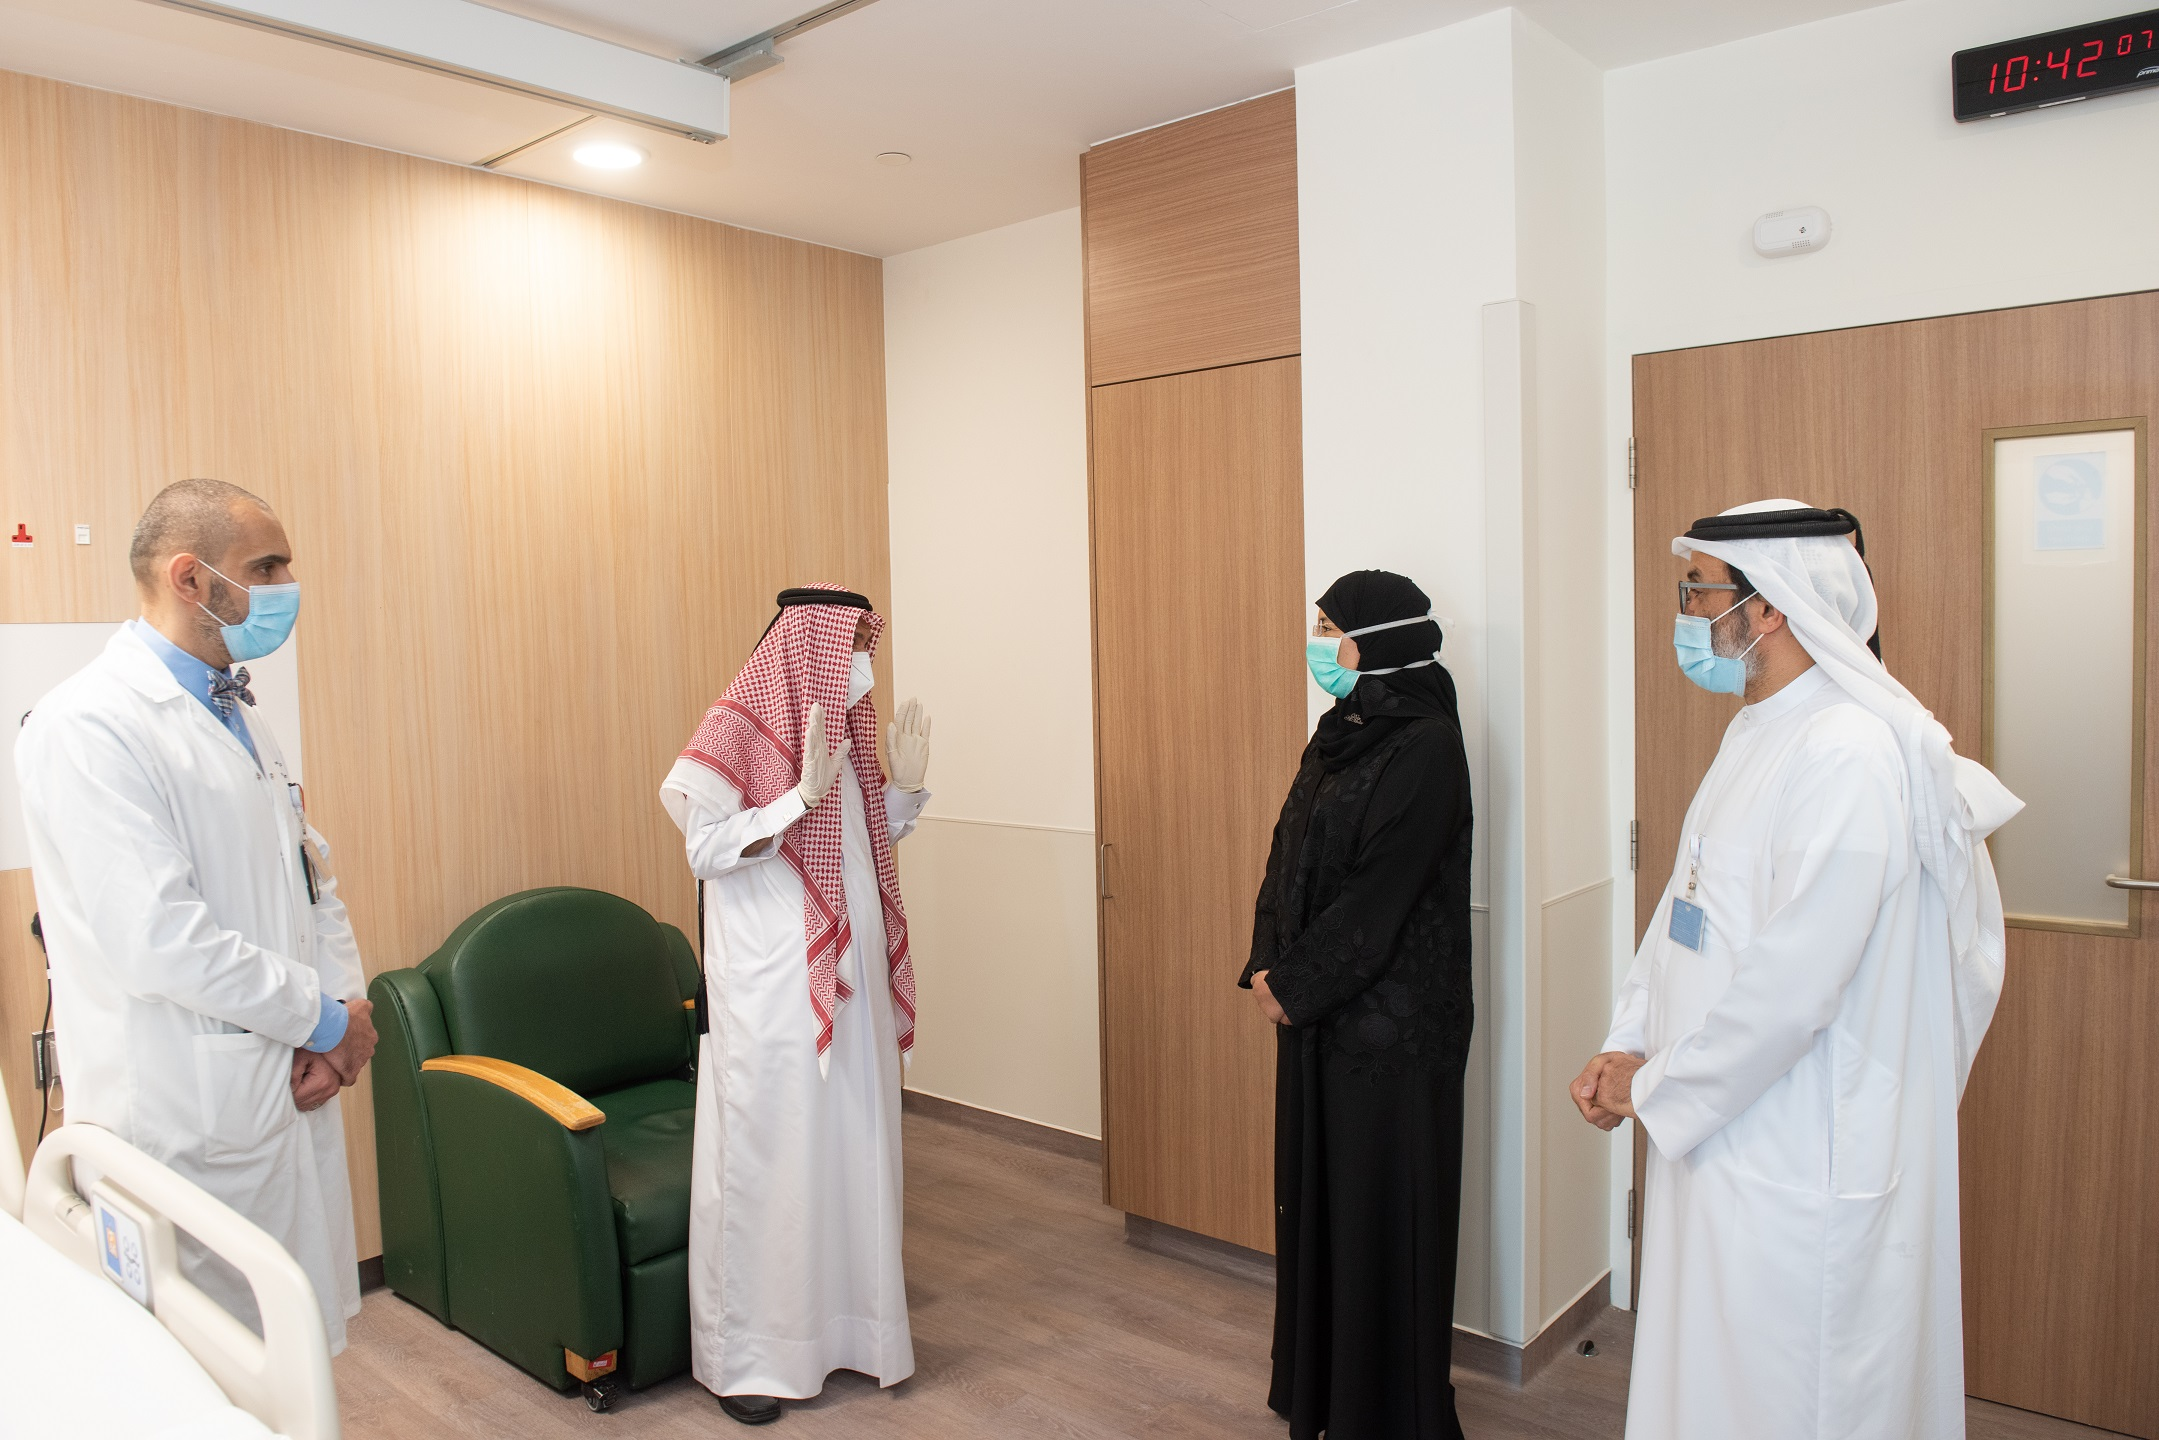 Minister of Public Health Meets Organ Transplant Recipients and Family of Donor